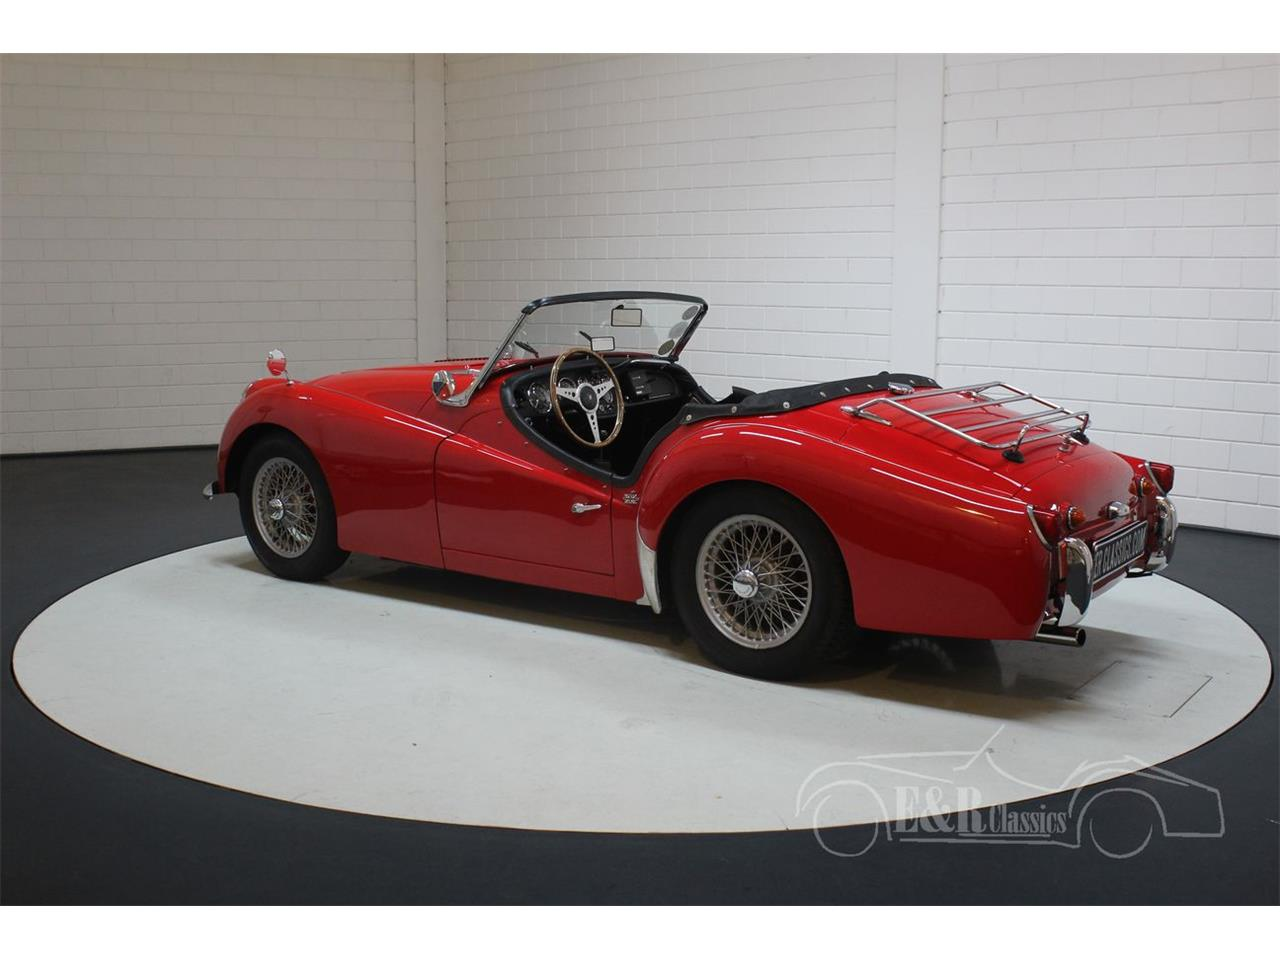 Large Picture of Classic '60 Triumph TR3A located in Waalwijk noord brabant - $41,400.00 - Q31H